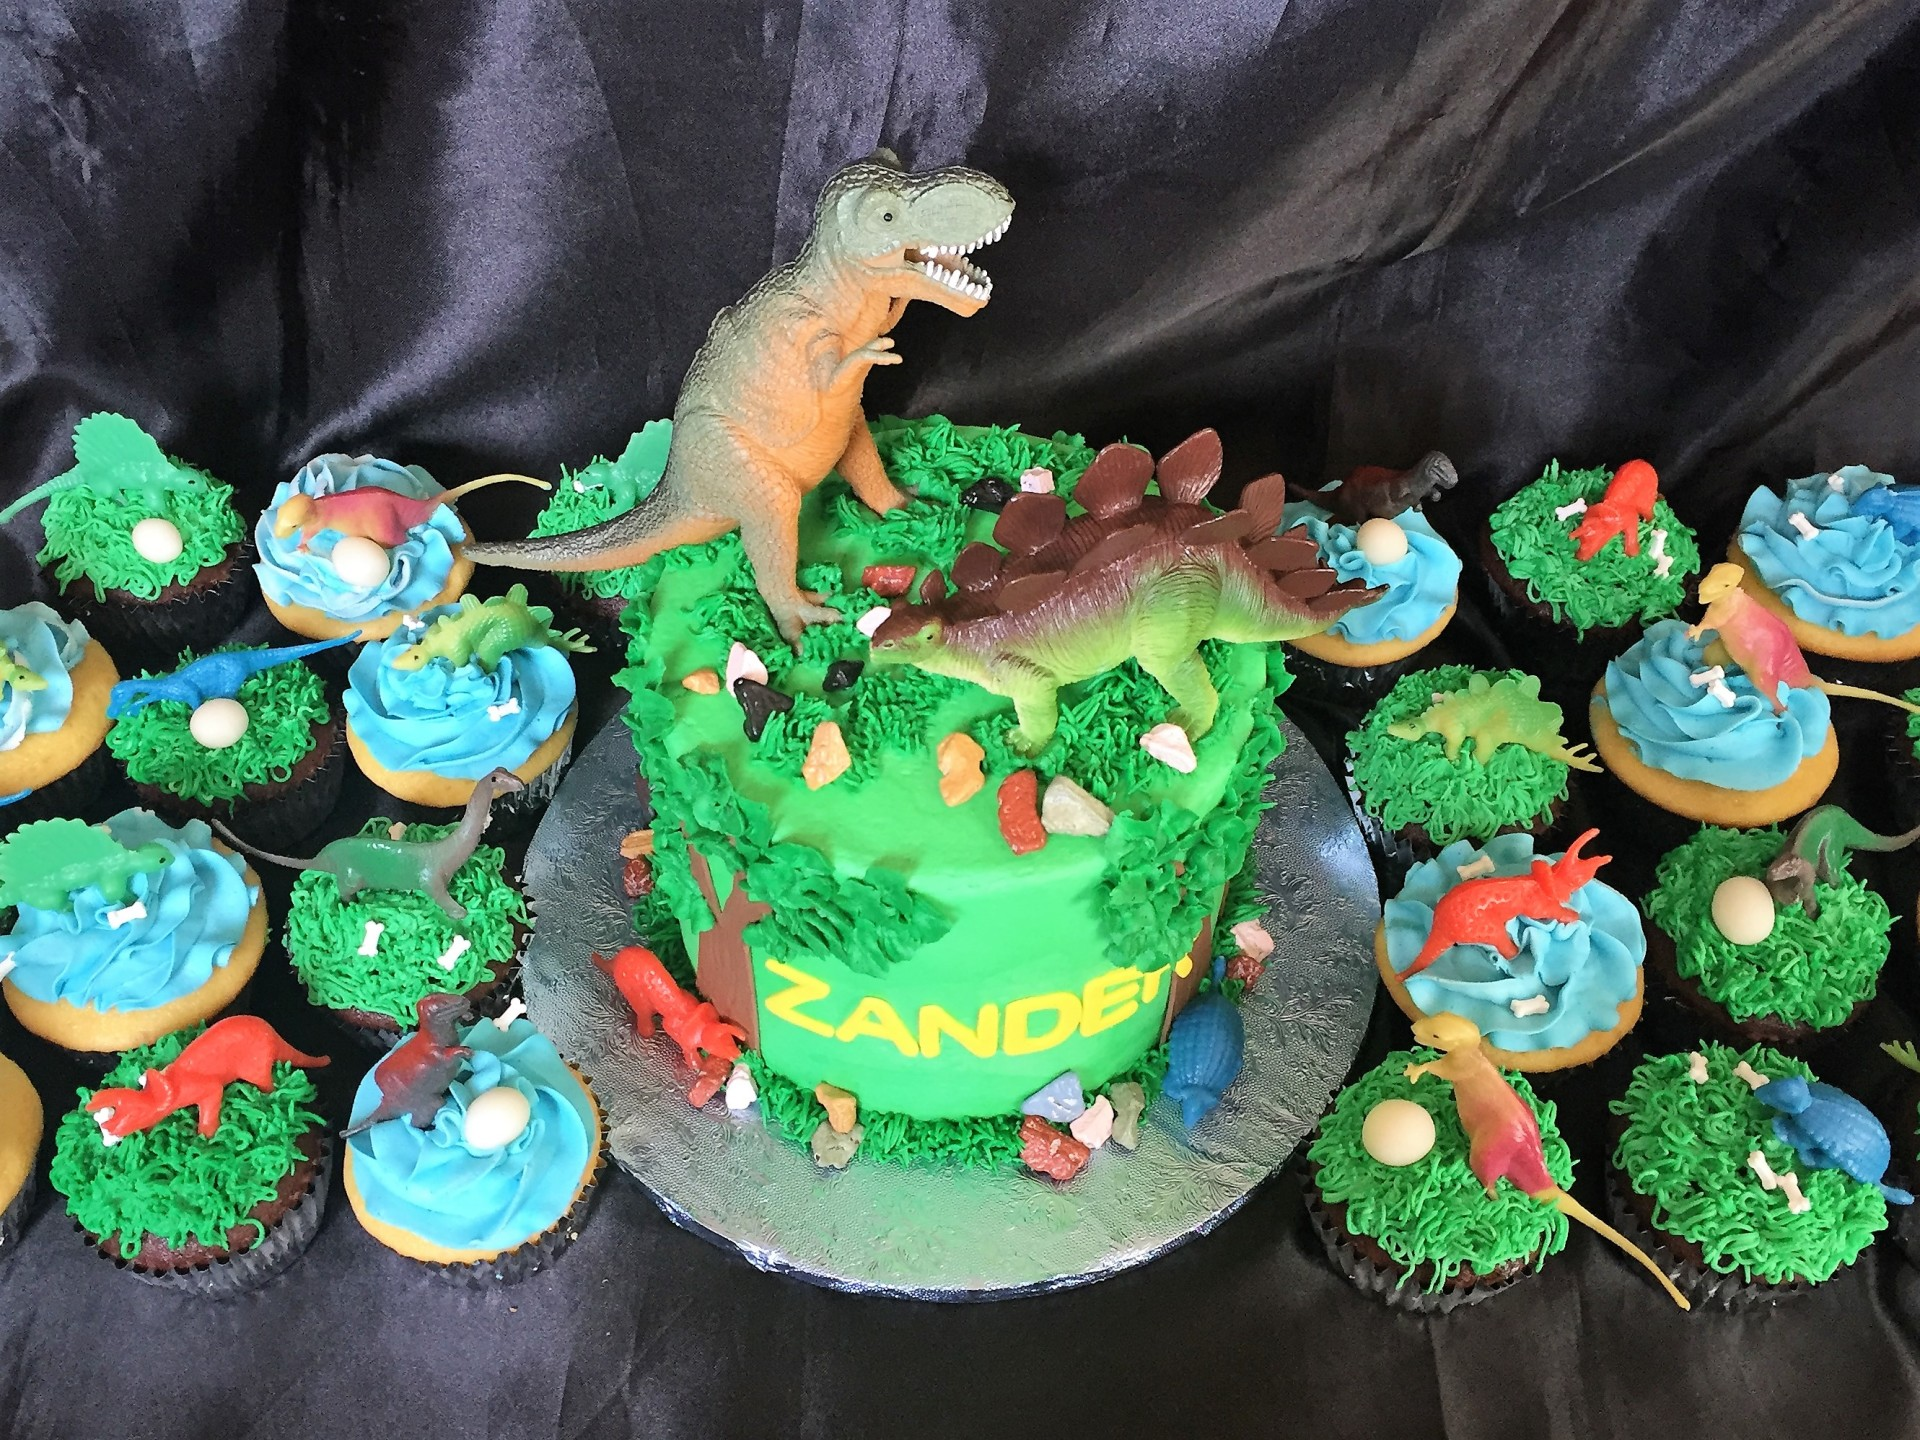 Dino toy toppers cake and cupcakes